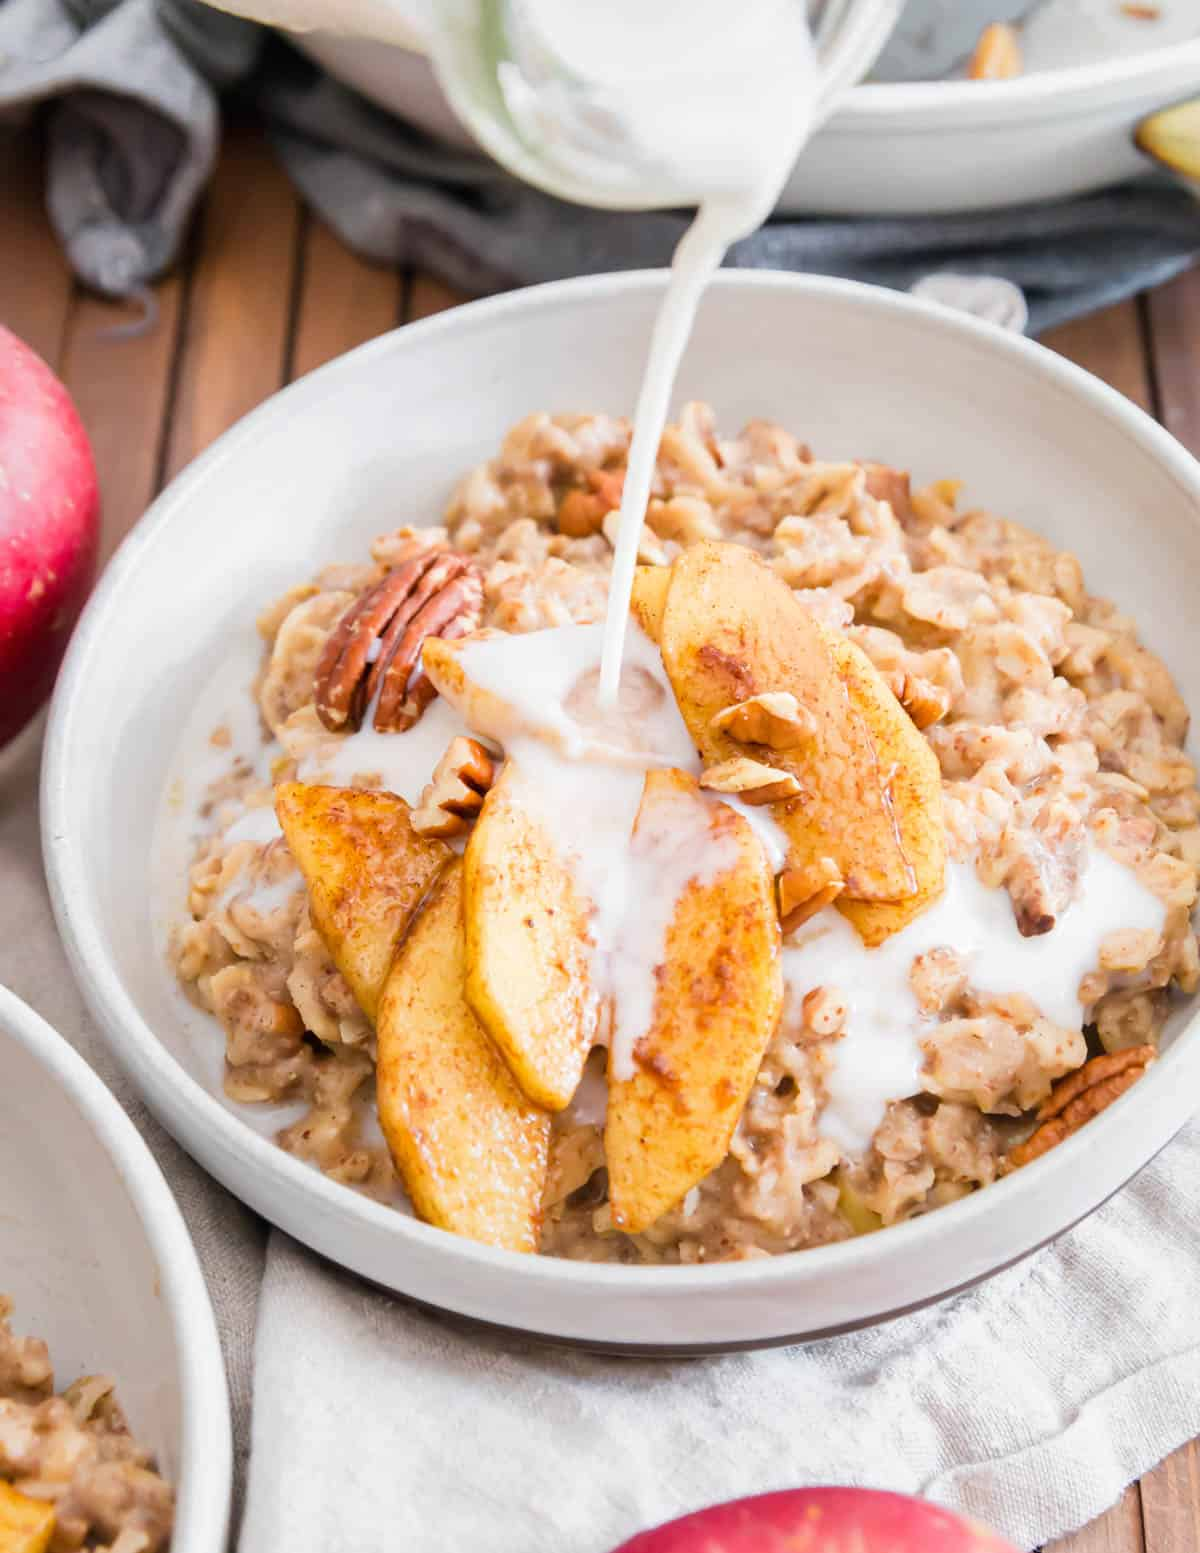 Add a splash of milk before serving this apple cinnamon oatmeal for a creamy and decadent tasting fall breakfast.